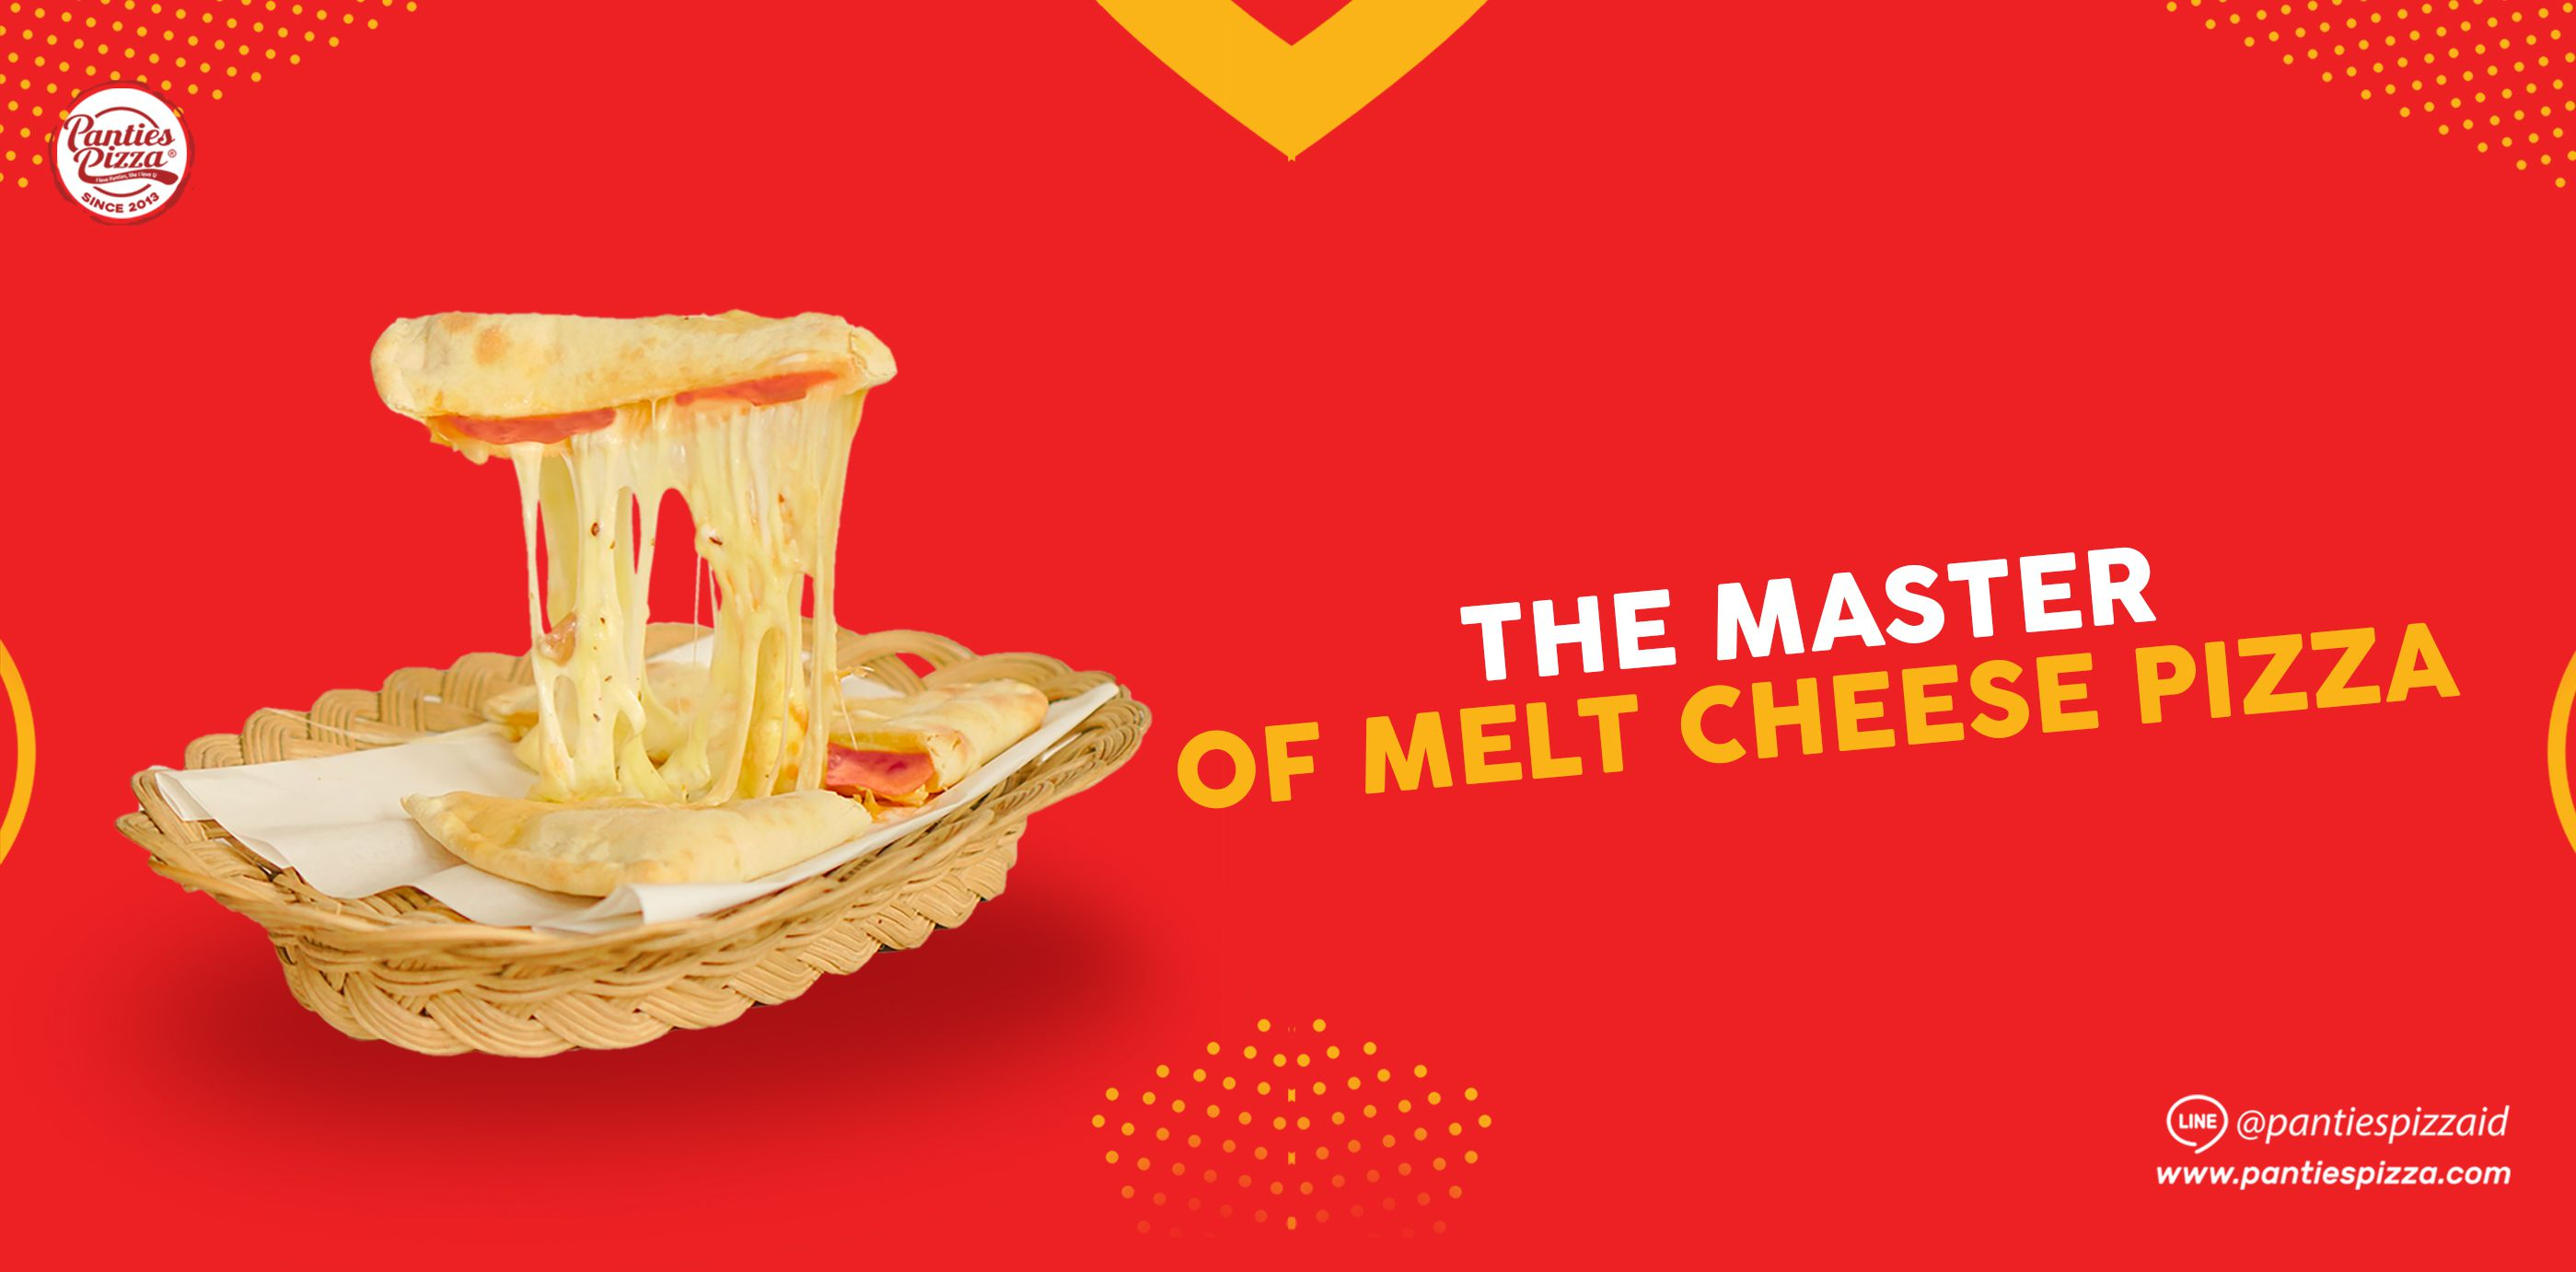 Panties Pizza Is The Master Of Melt Cheese Pizza Mastercheese Master Cheese Pizza The Master of Melt Cheese Pizza Inspiration News Pizza Single Slide